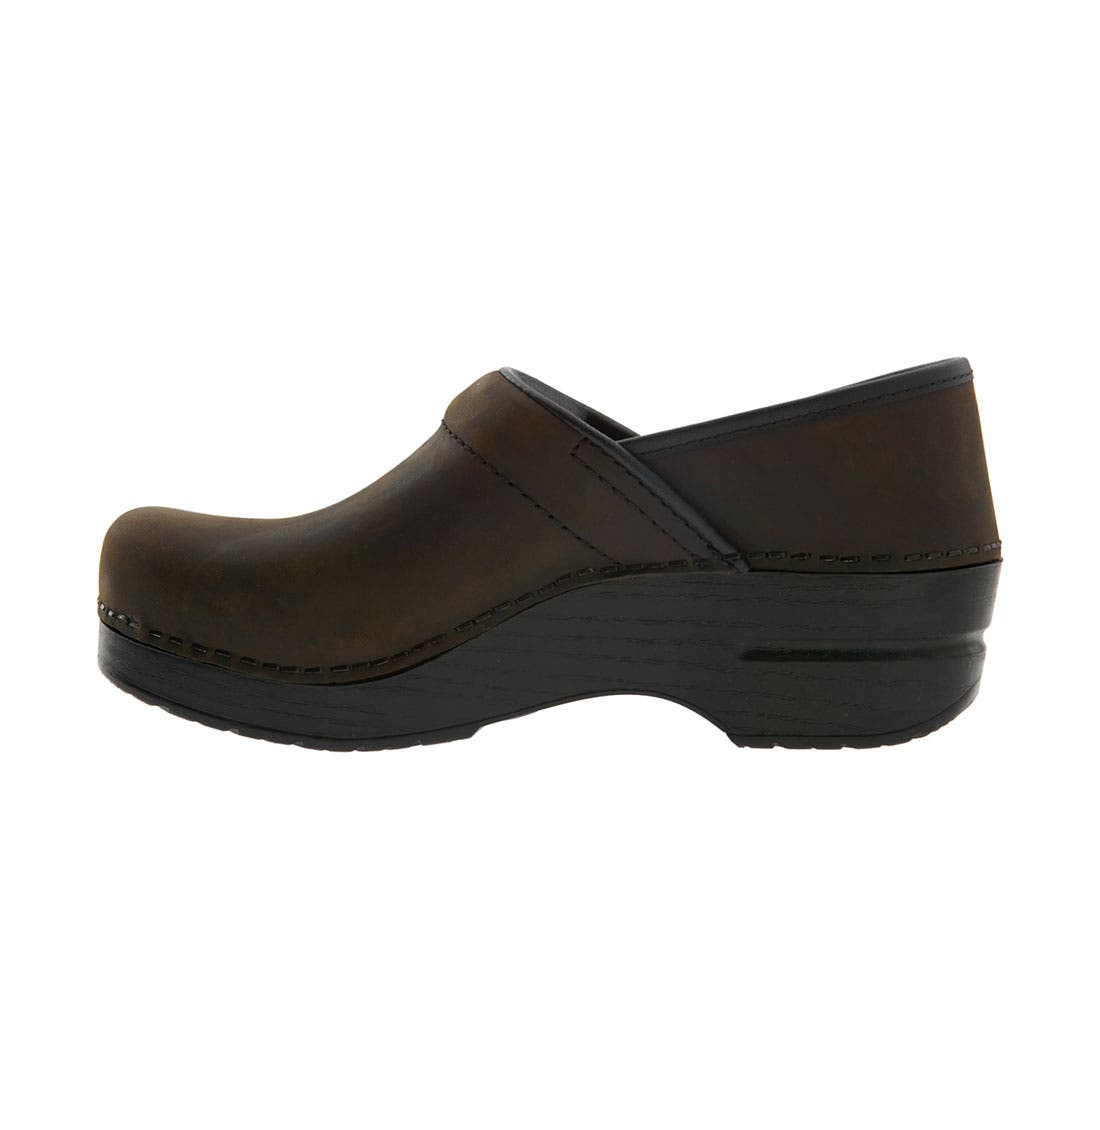 Alternate Image 2  - Dansko 'Professional - Narrow' Oiled Leather Clog